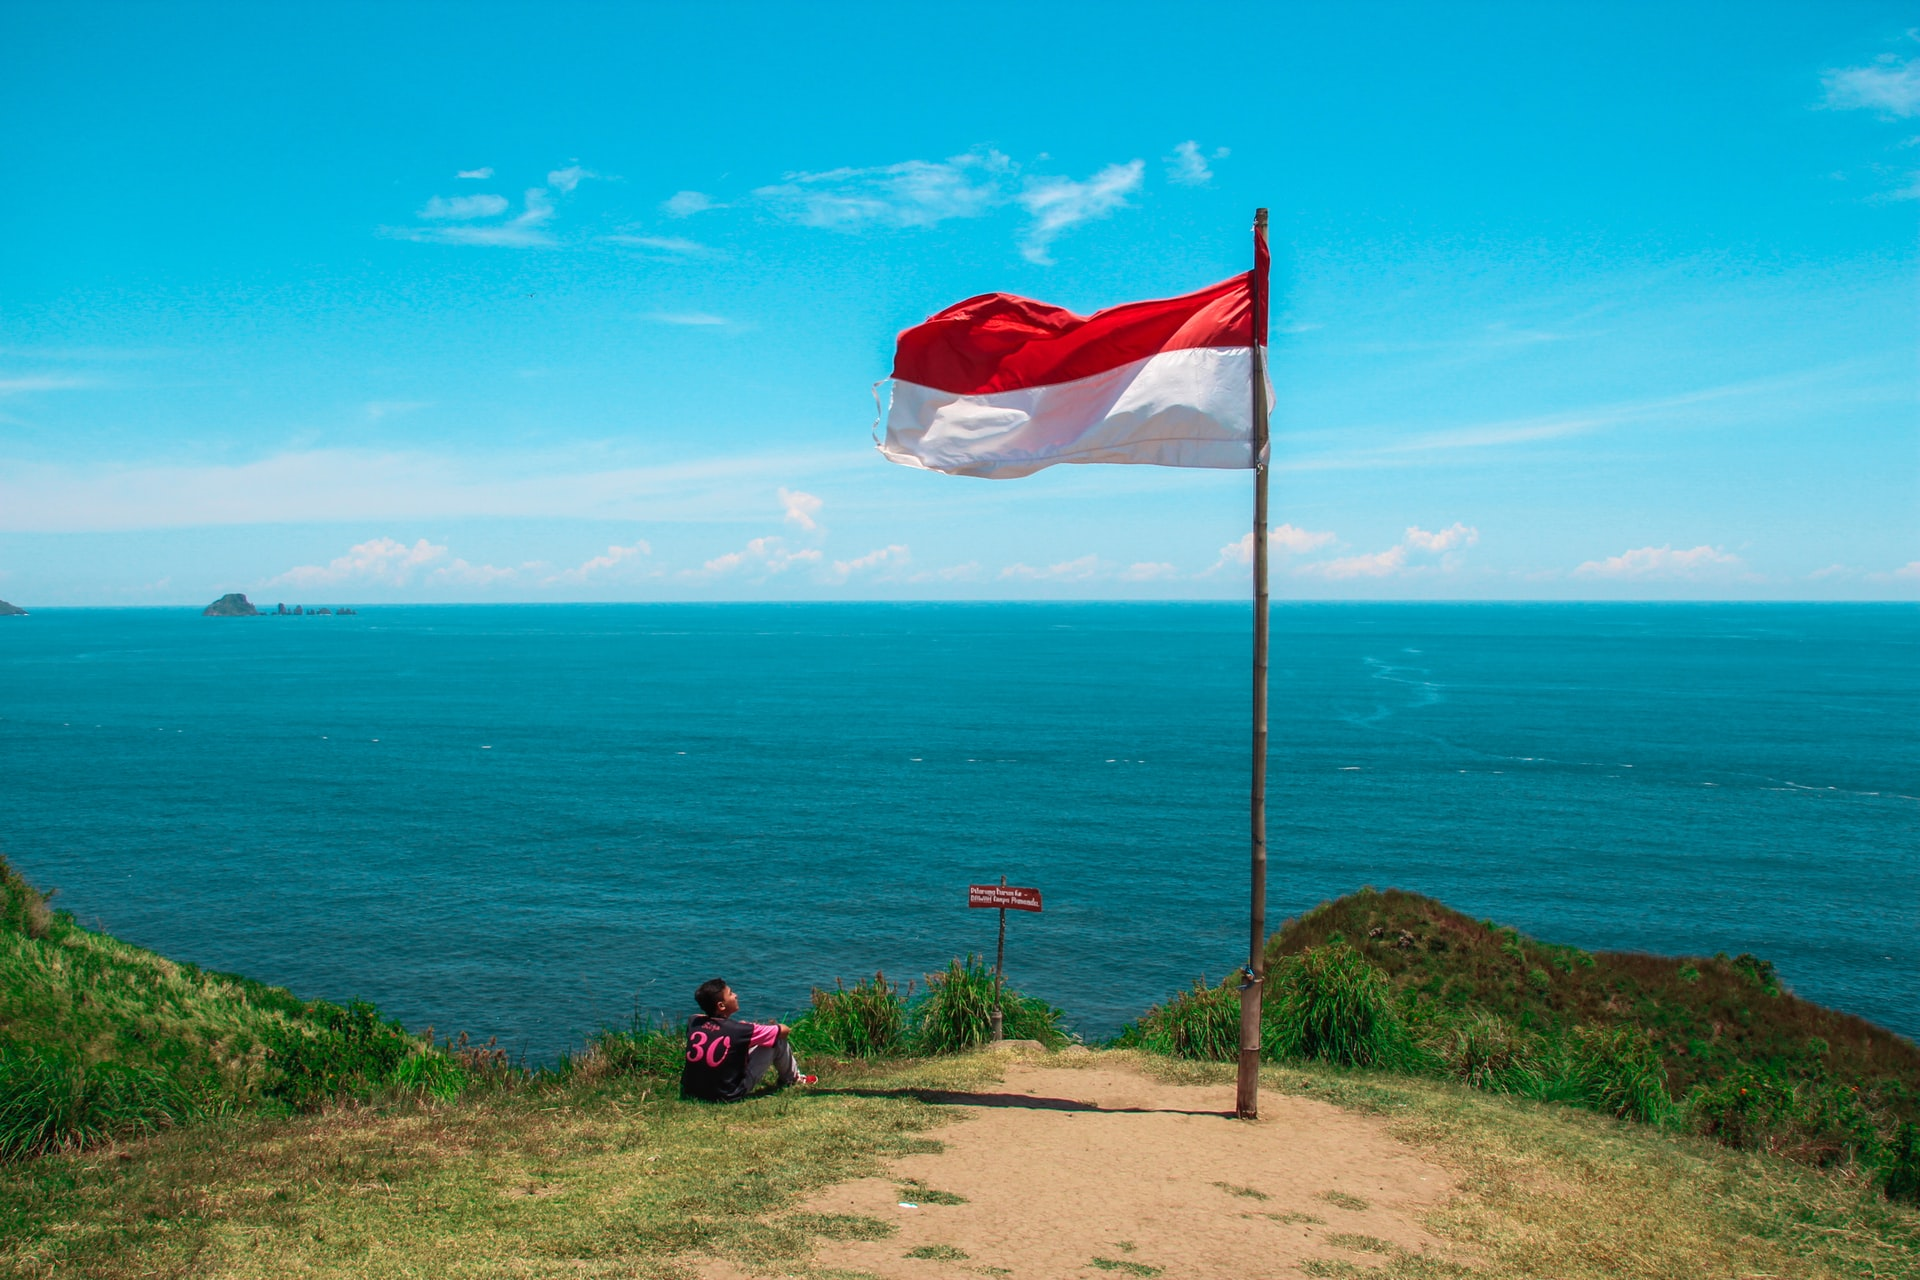 Indonesia's SWF Will Offer Dedicated Industry Funds to Shore Up b Investment